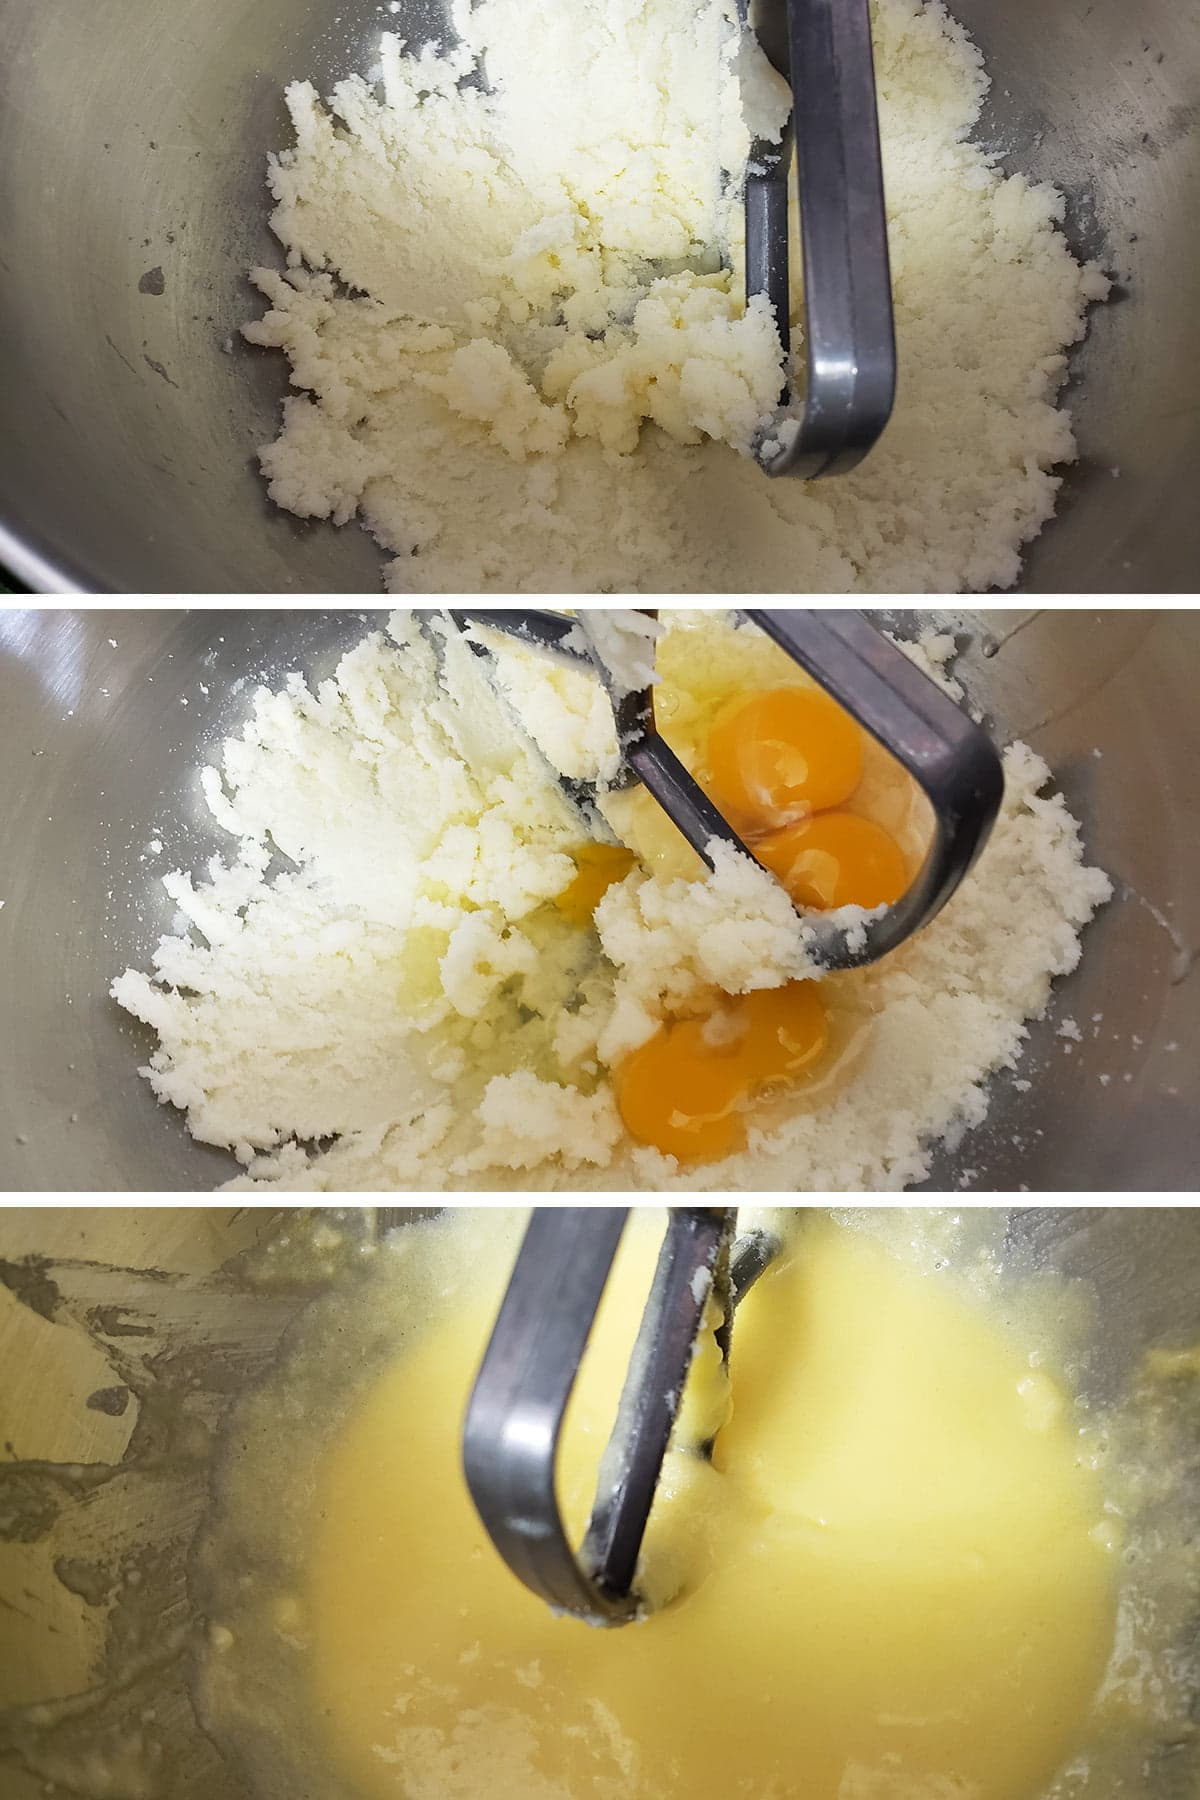 A 3 part compilation image showing butter and sugar being beaten together, the addition of eggs, and a smooth yellow batter.